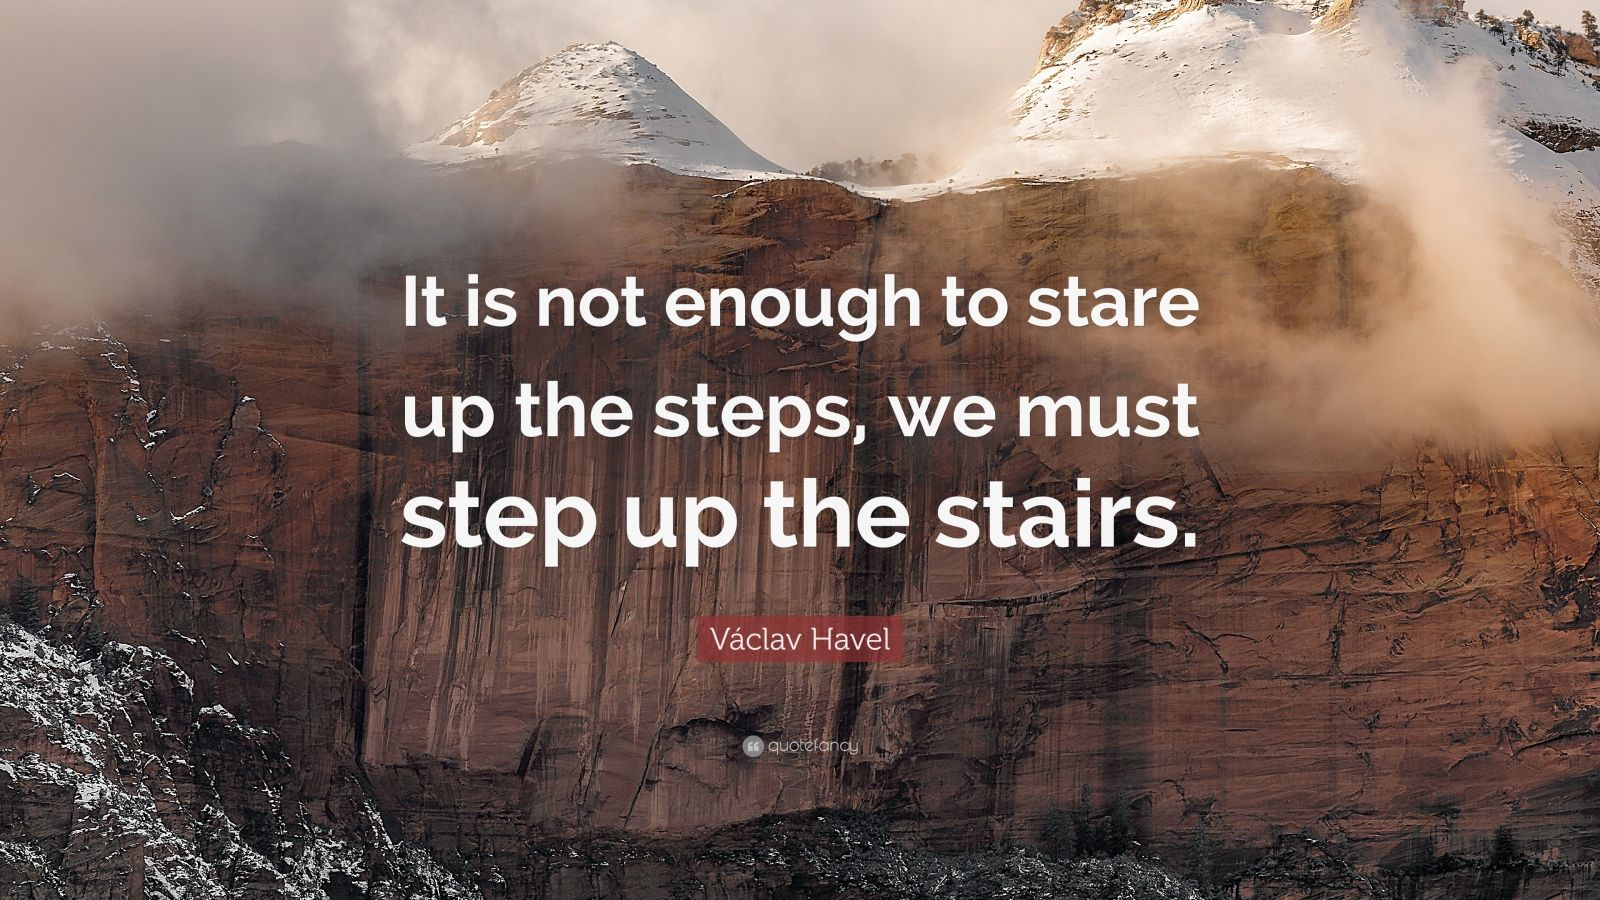 """Václav Havel Quote: """"It is not enough to stare up the steps, we must step up the stairs."""""""